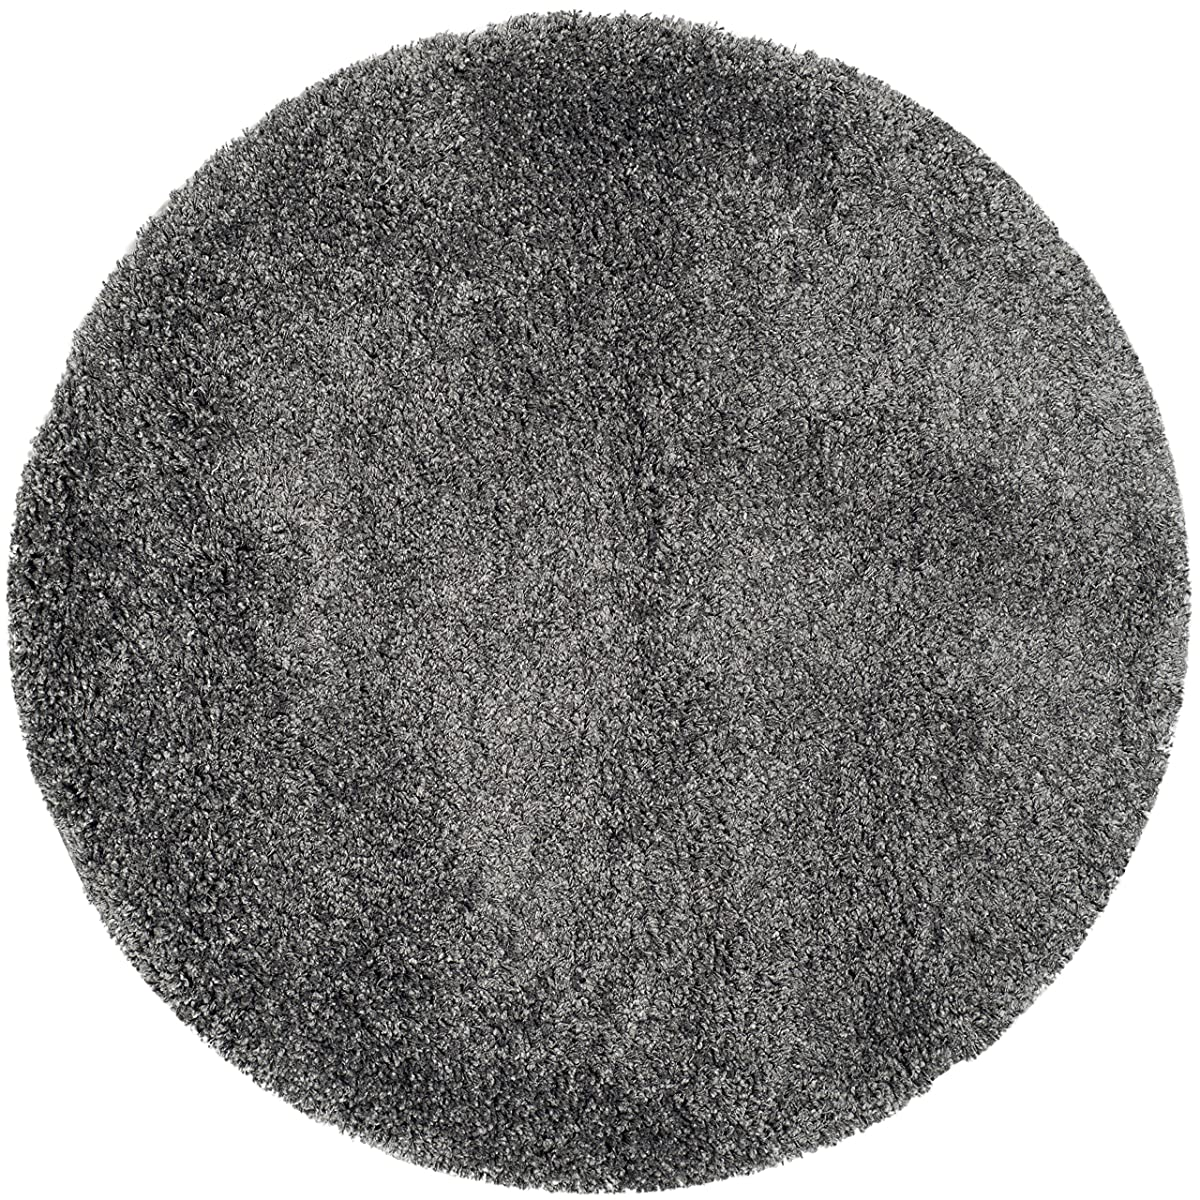 Safavieh California Shag Collection 4 Diameter Area Rug, Dark Grey